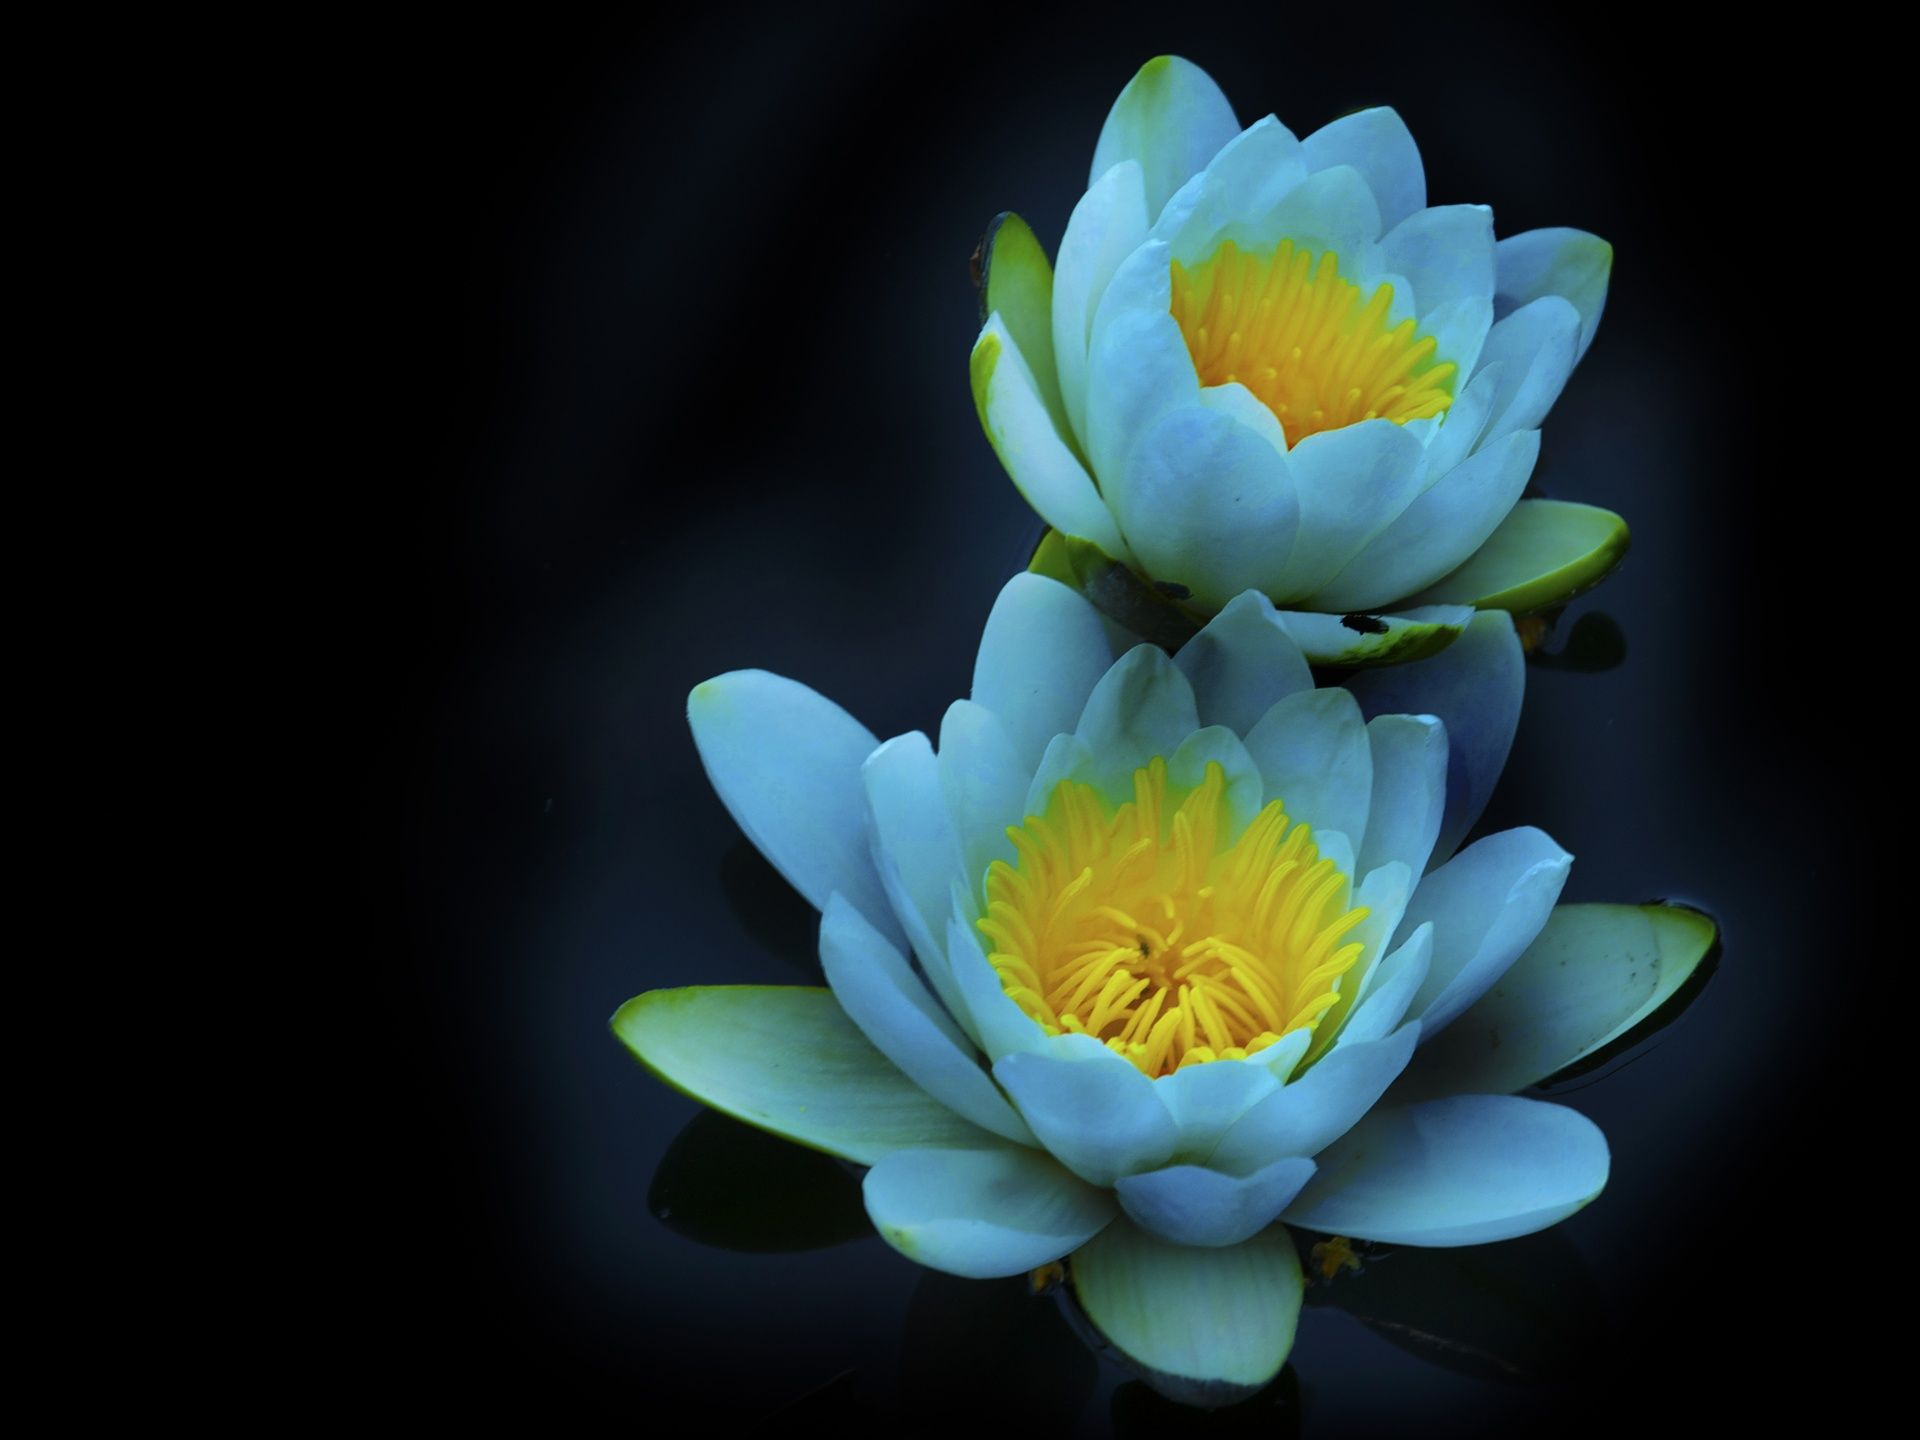 Water lily july birth flower usa natural beauty pinterest water lily july birth flower usa izmirmasajfo